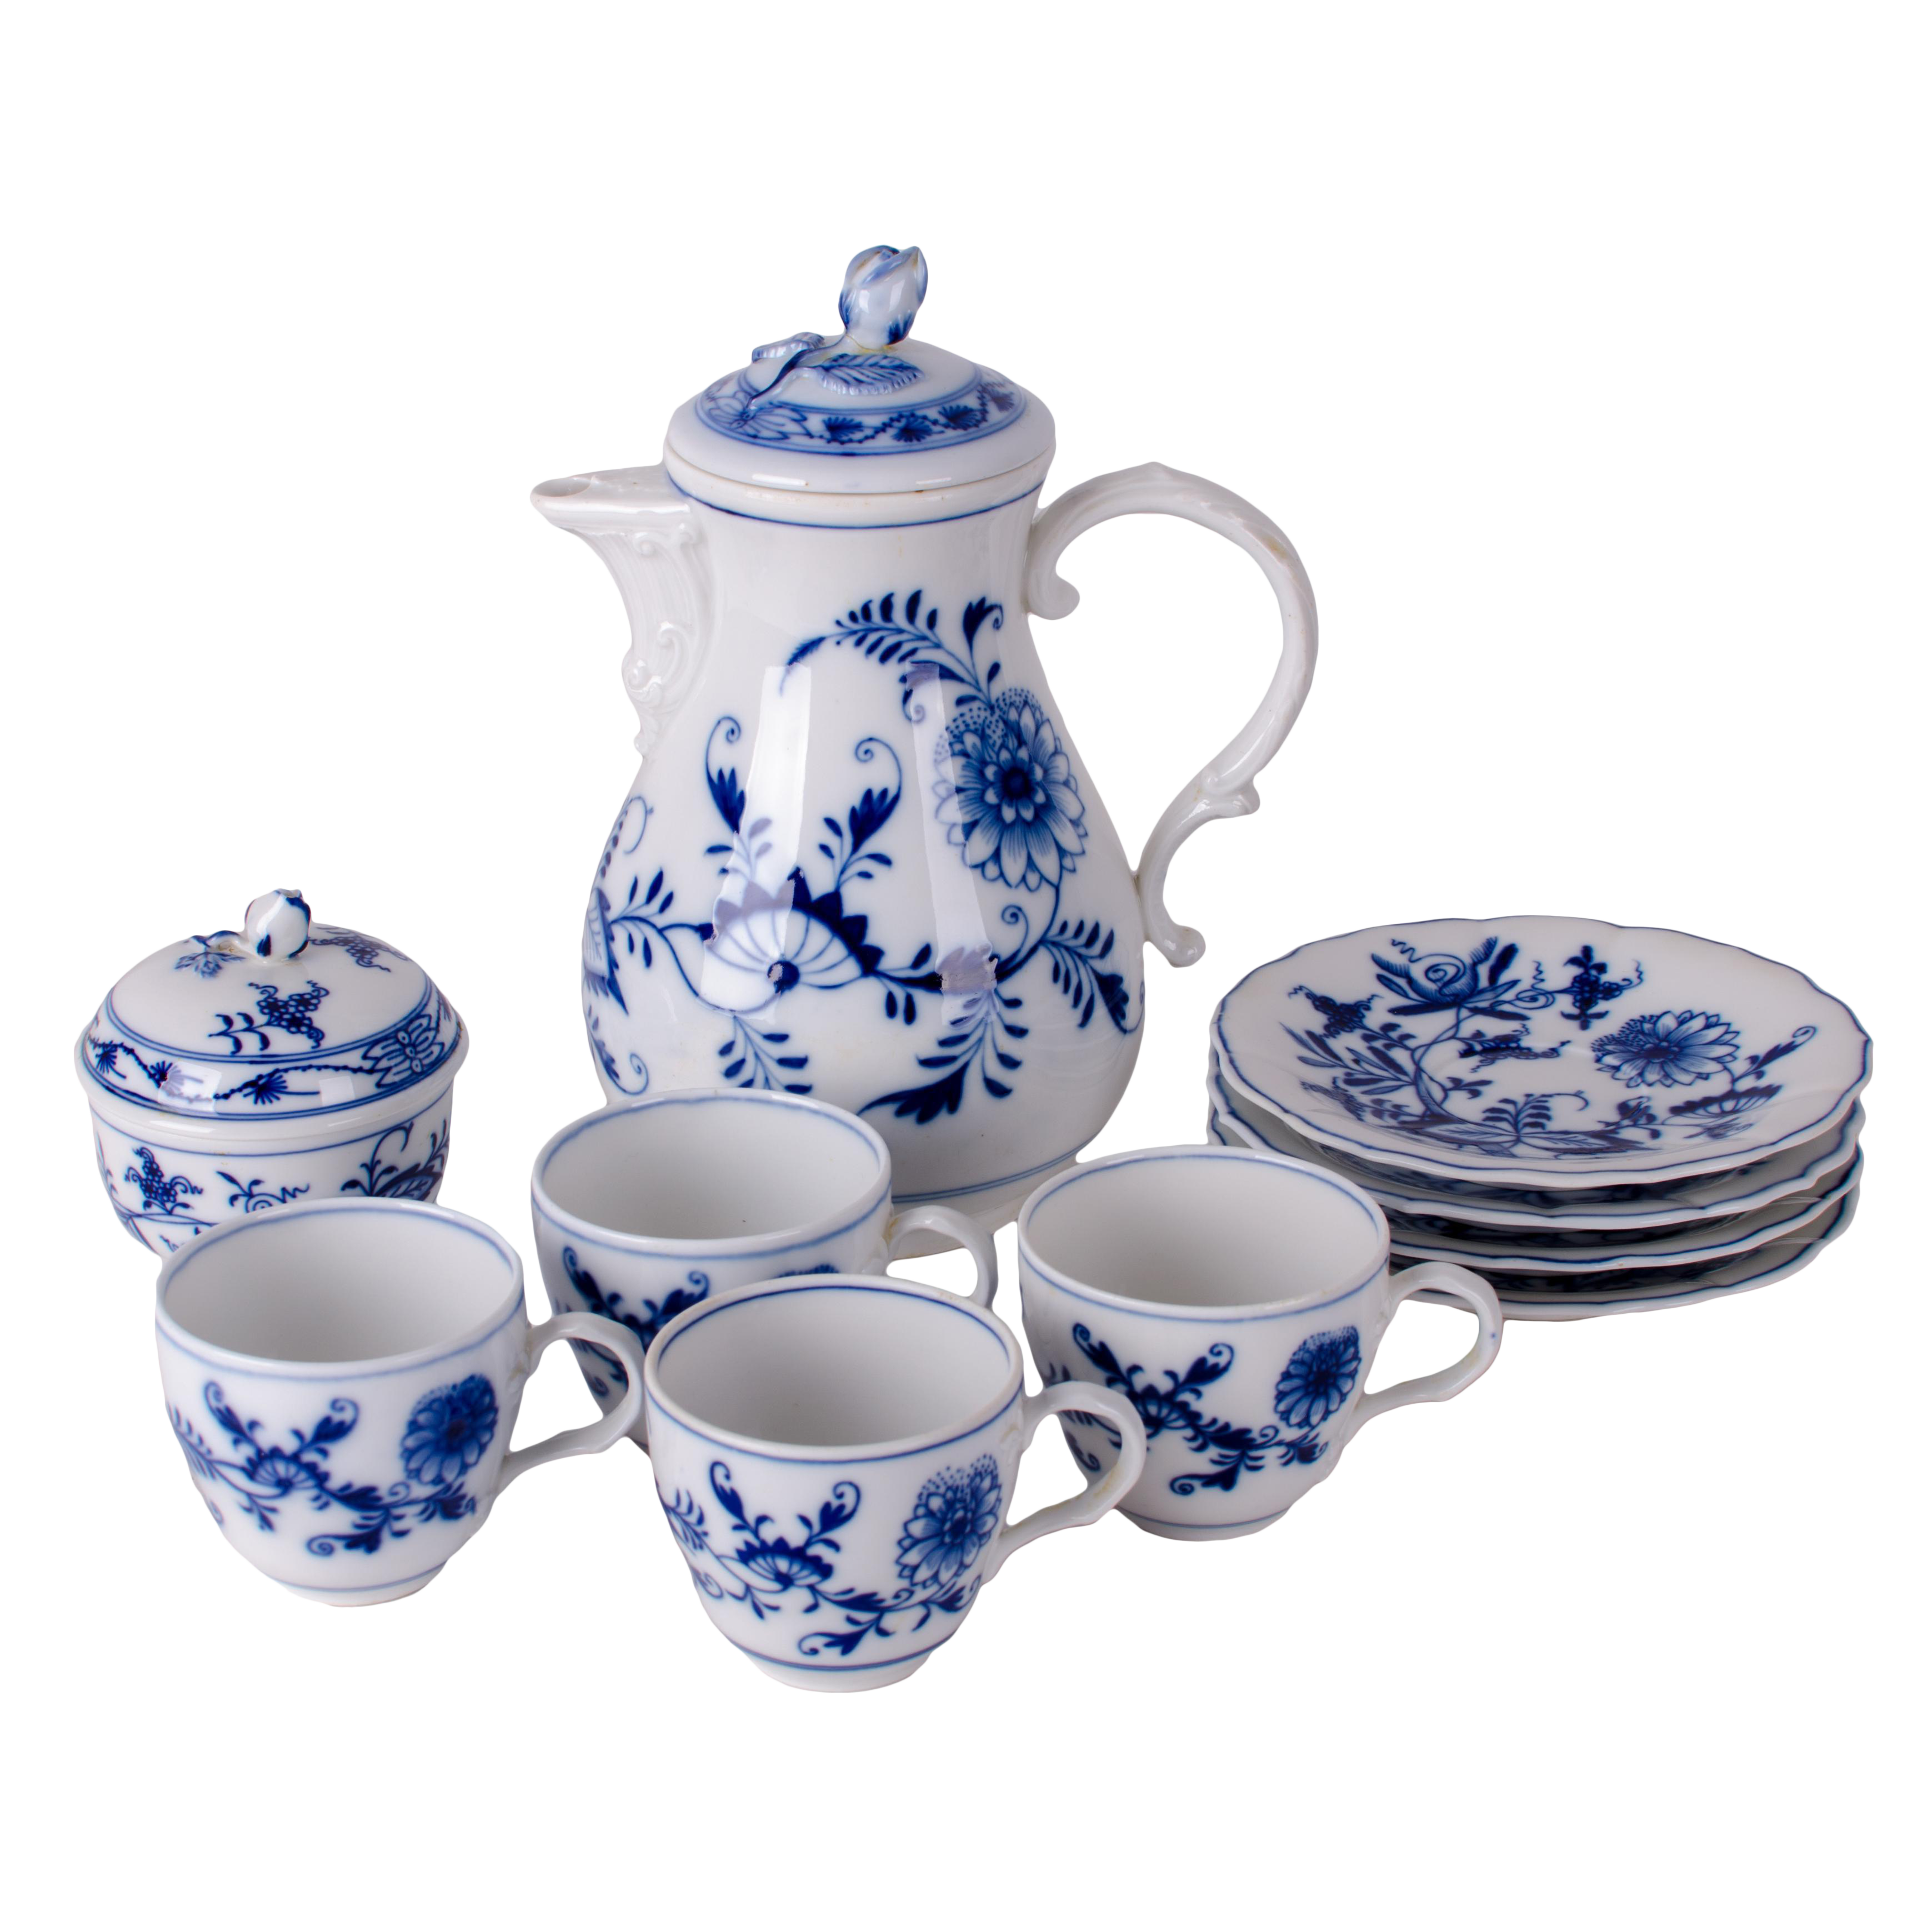 Meissen Blue Onion Tea Set  sc 1 st  Chairish & Meissen Blue Onion Porcelain Dessert Set- 41 Pieces | Chairish